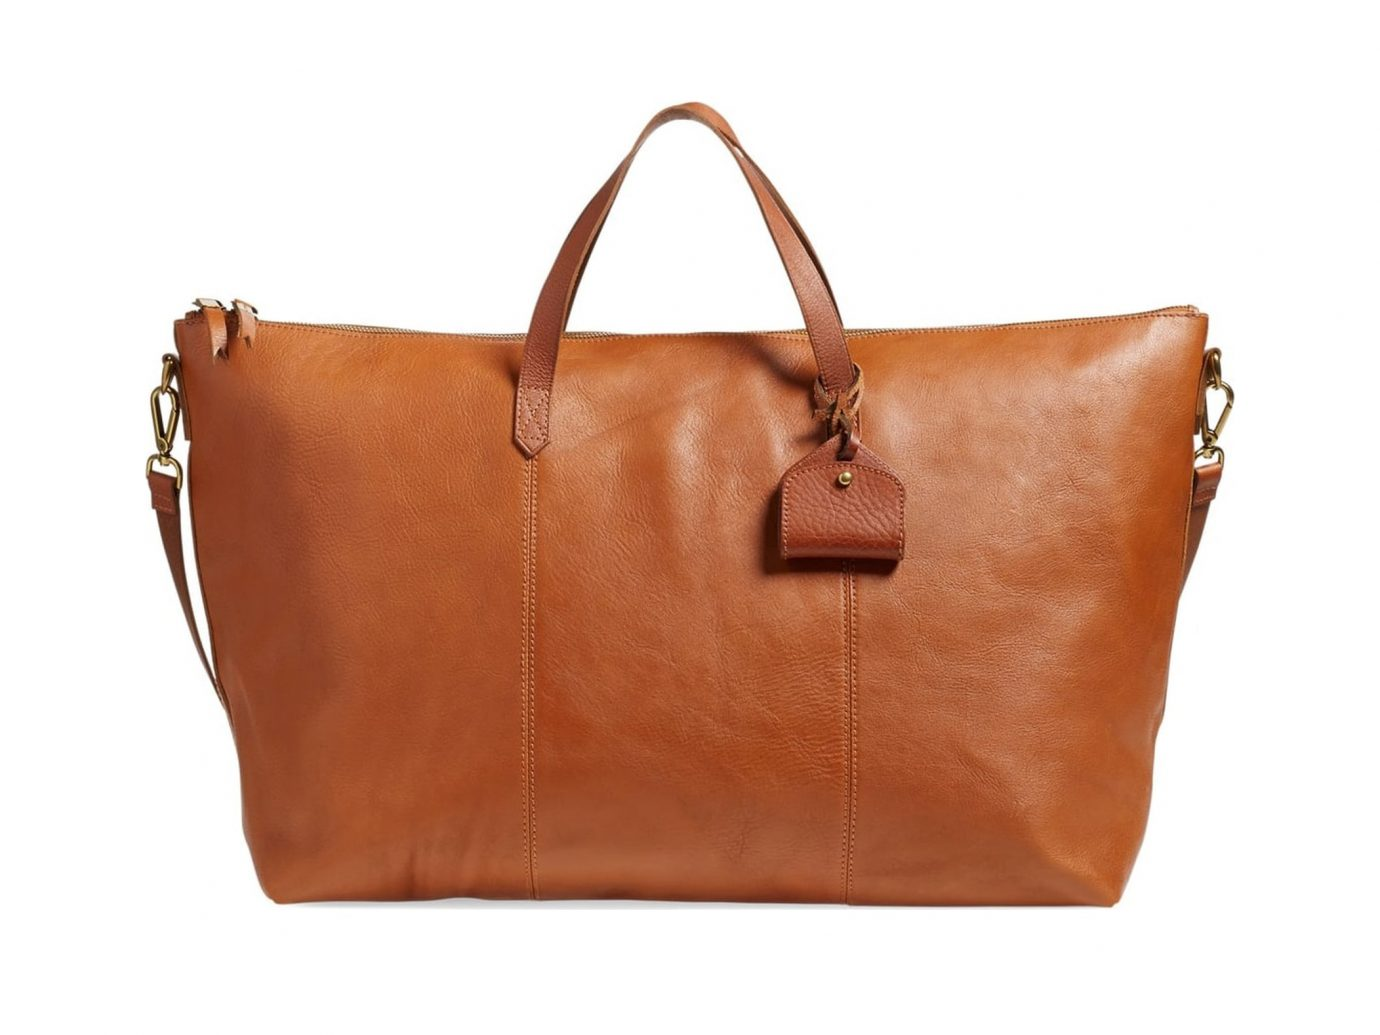 Best Weekend Bags, Madewell Transport Weekend Bag